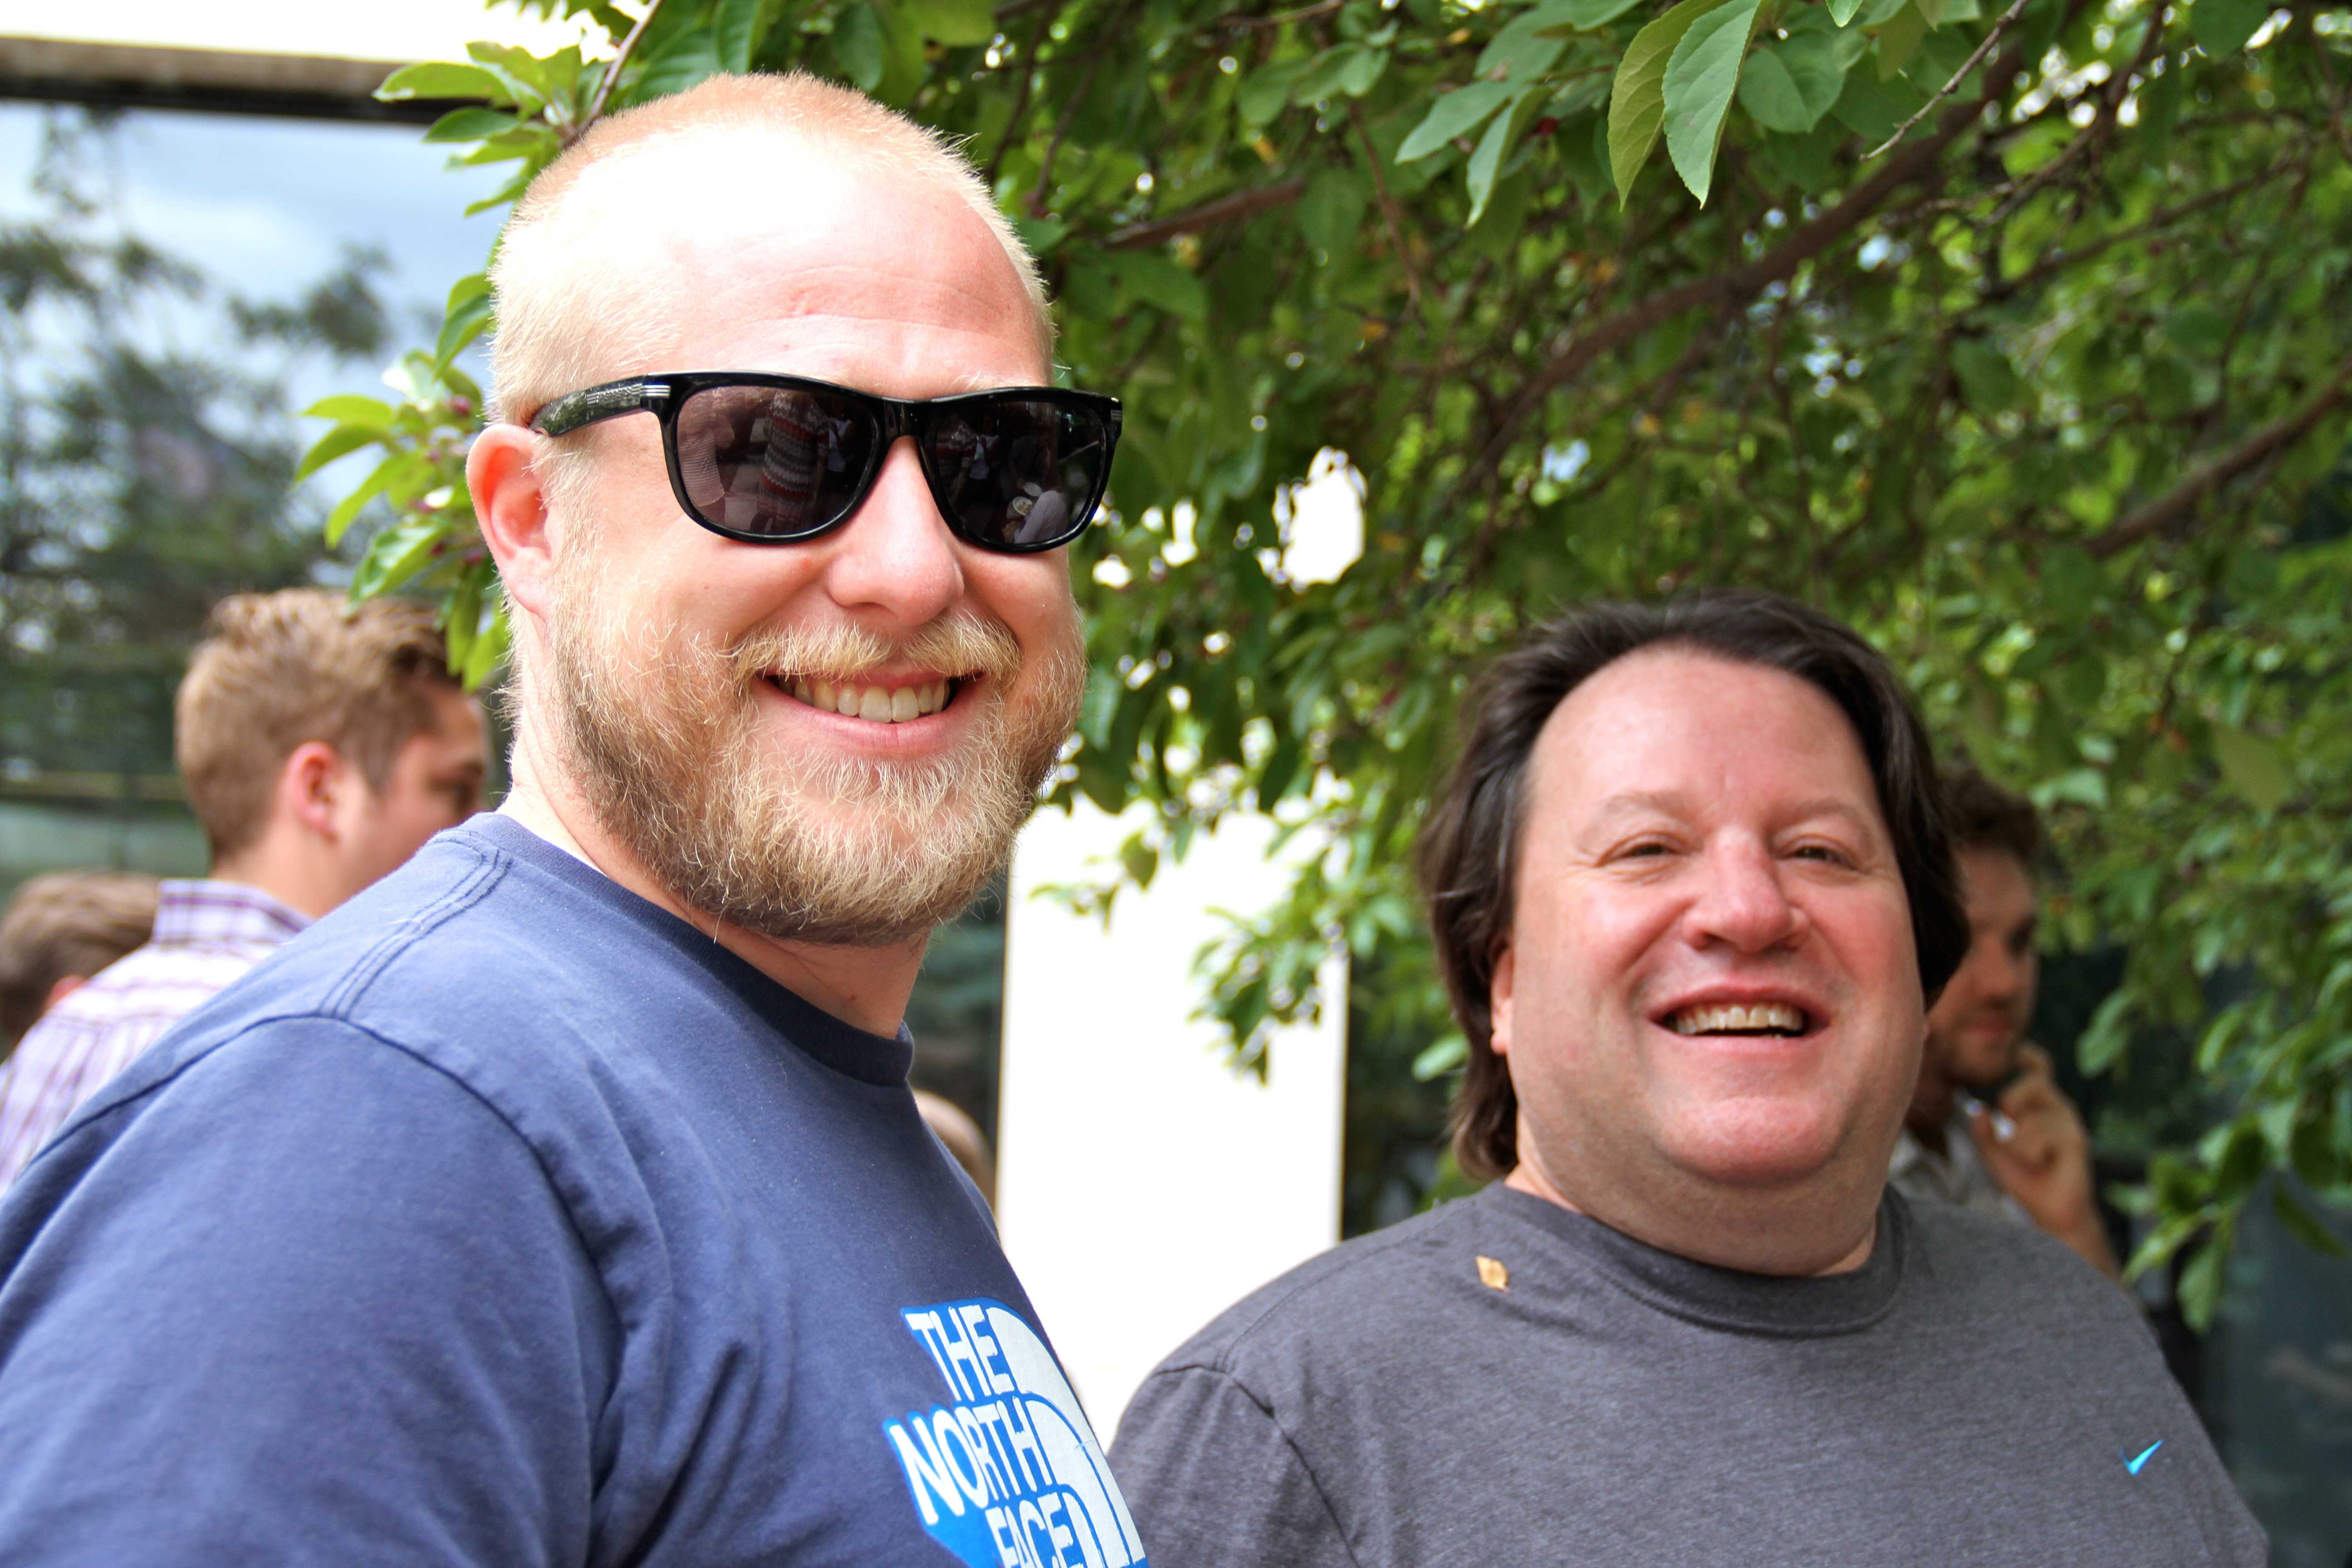 Adam and Tommy mingling at the salsa-taste-off patio party